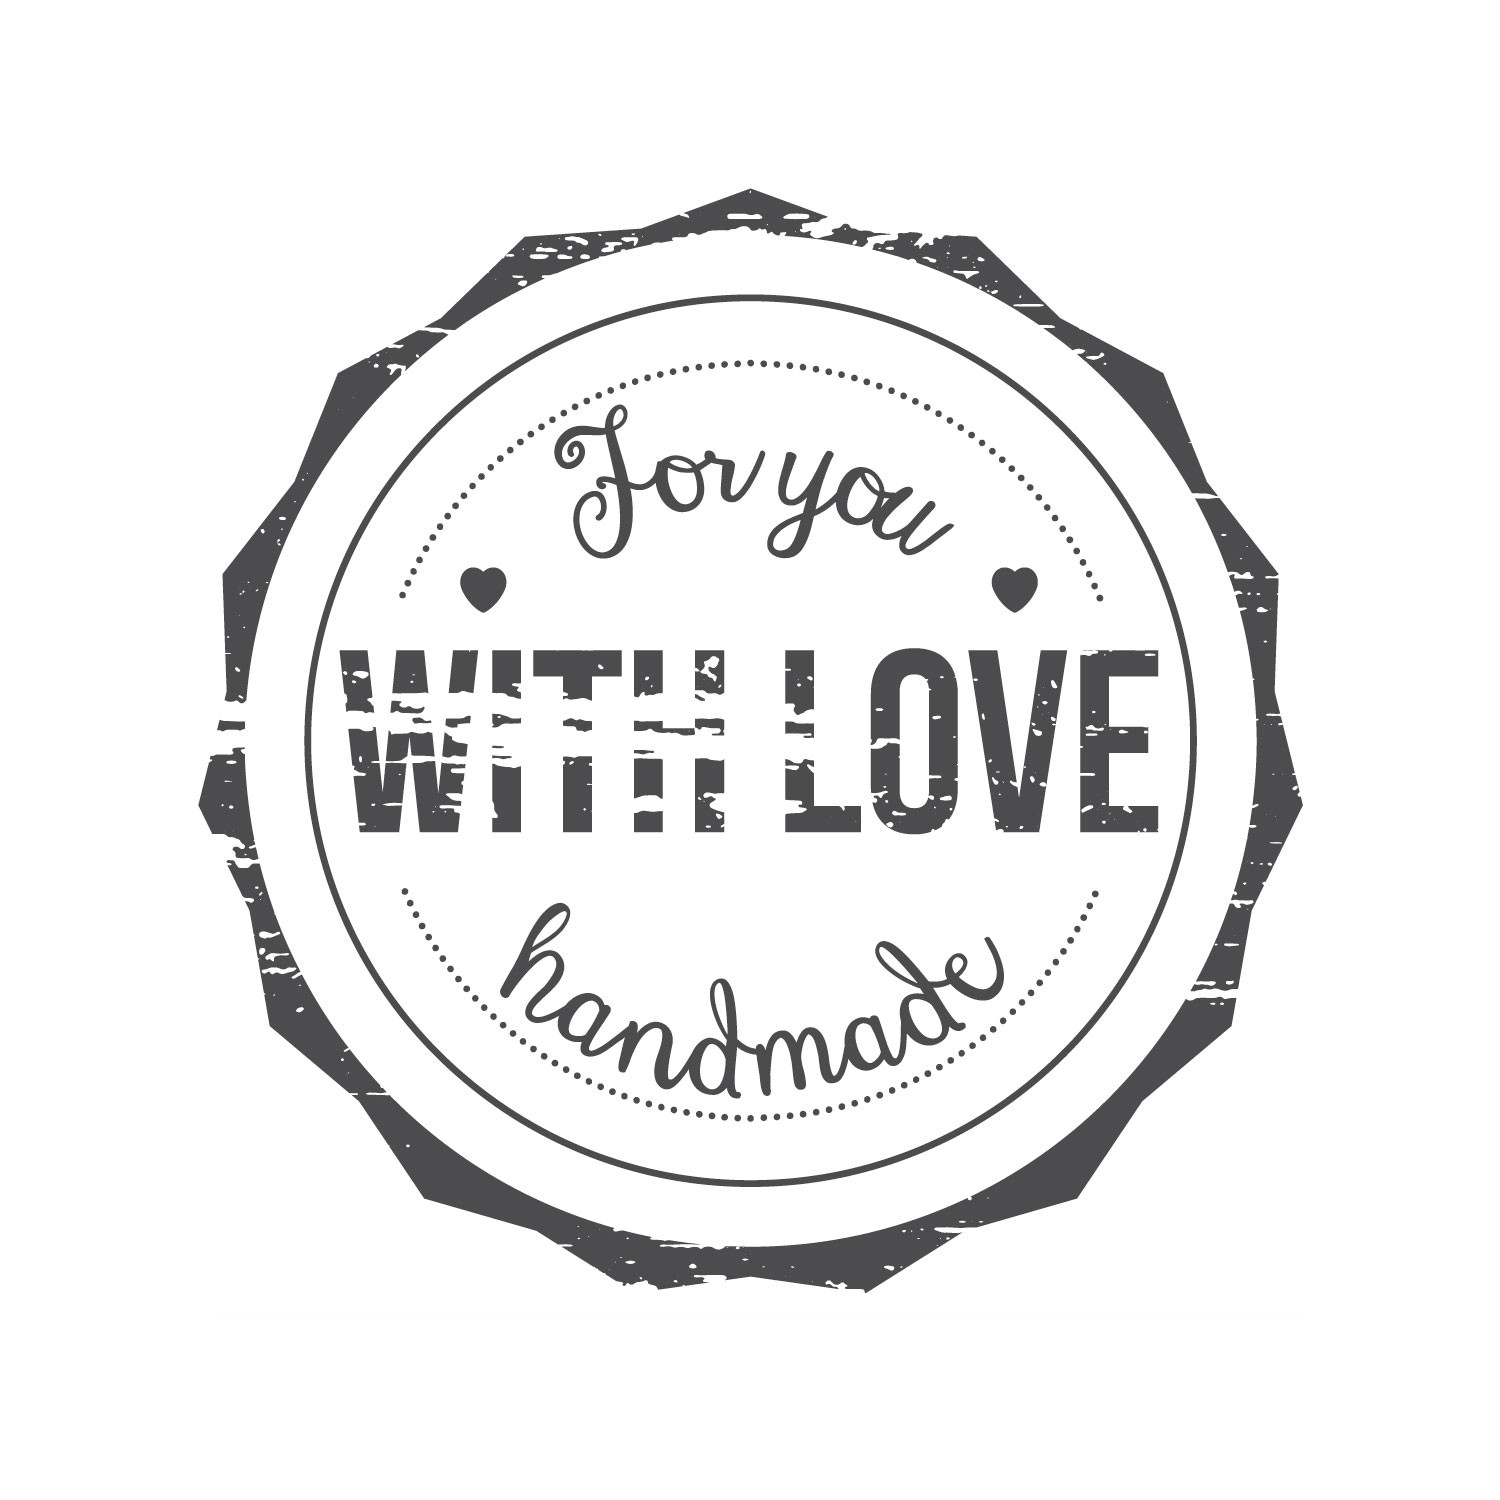 for you handmade with love stamp gallinasmilza